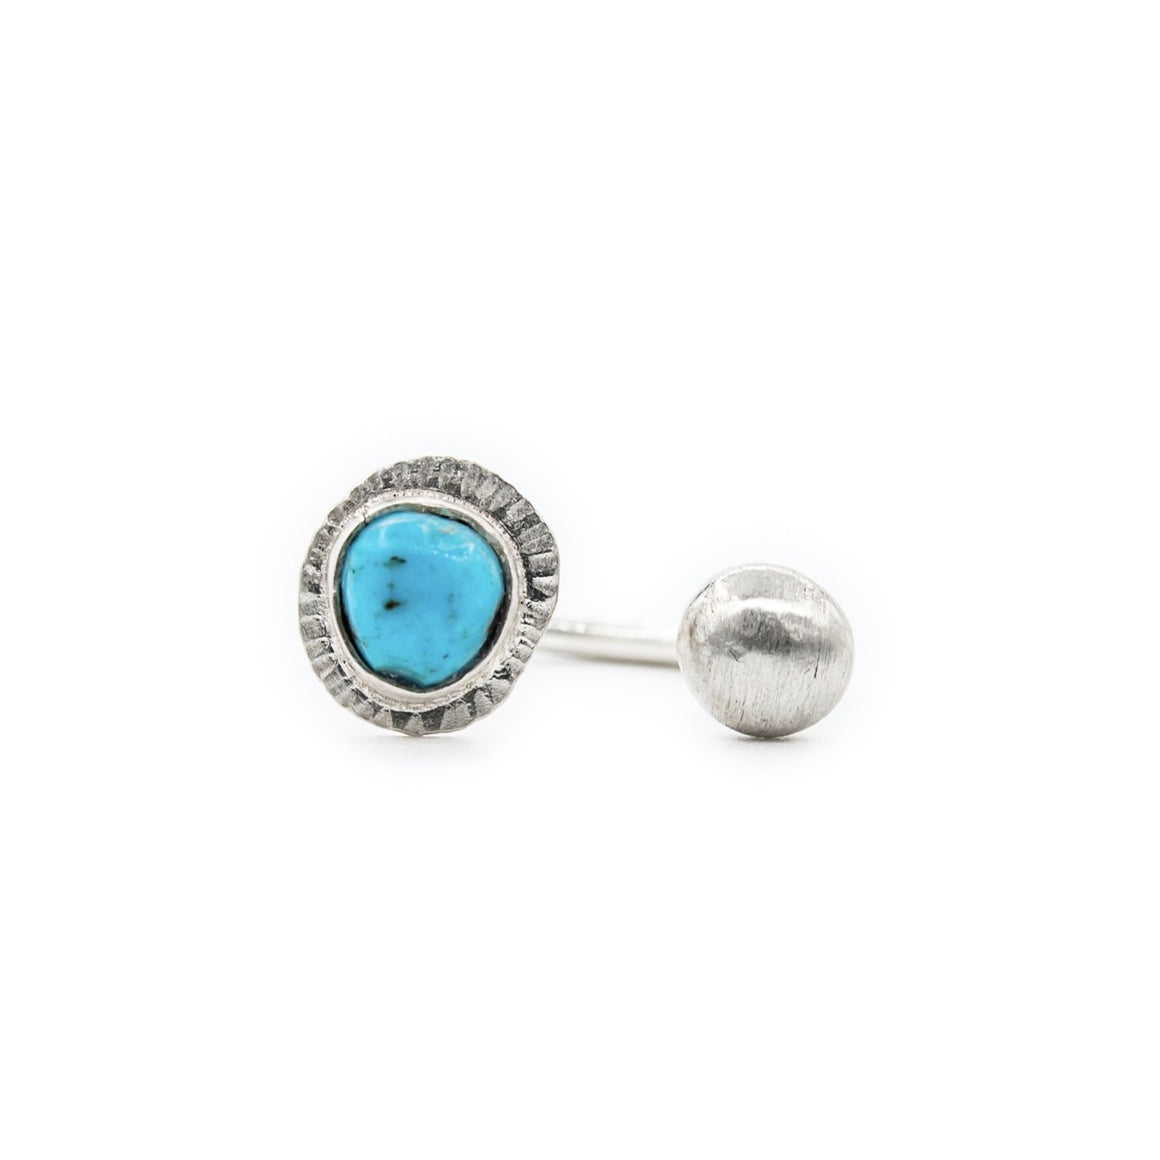 Contemporary Open Ring with Turquoise and Brushed Silver Ball by OSJ